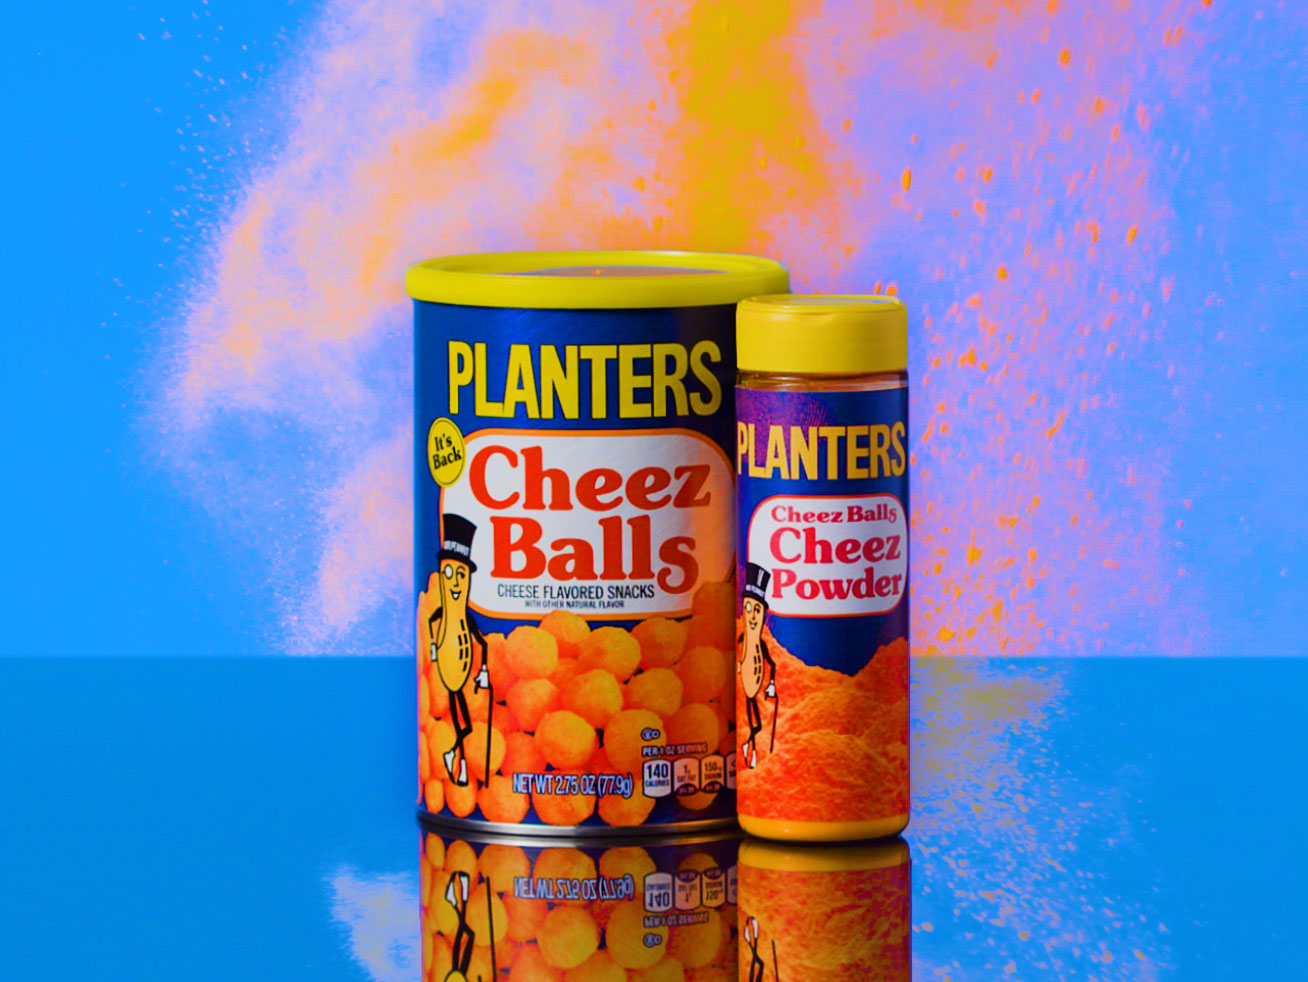 Planters Cheez Balls Is Giving Away Shakers Full of That Orange Dust